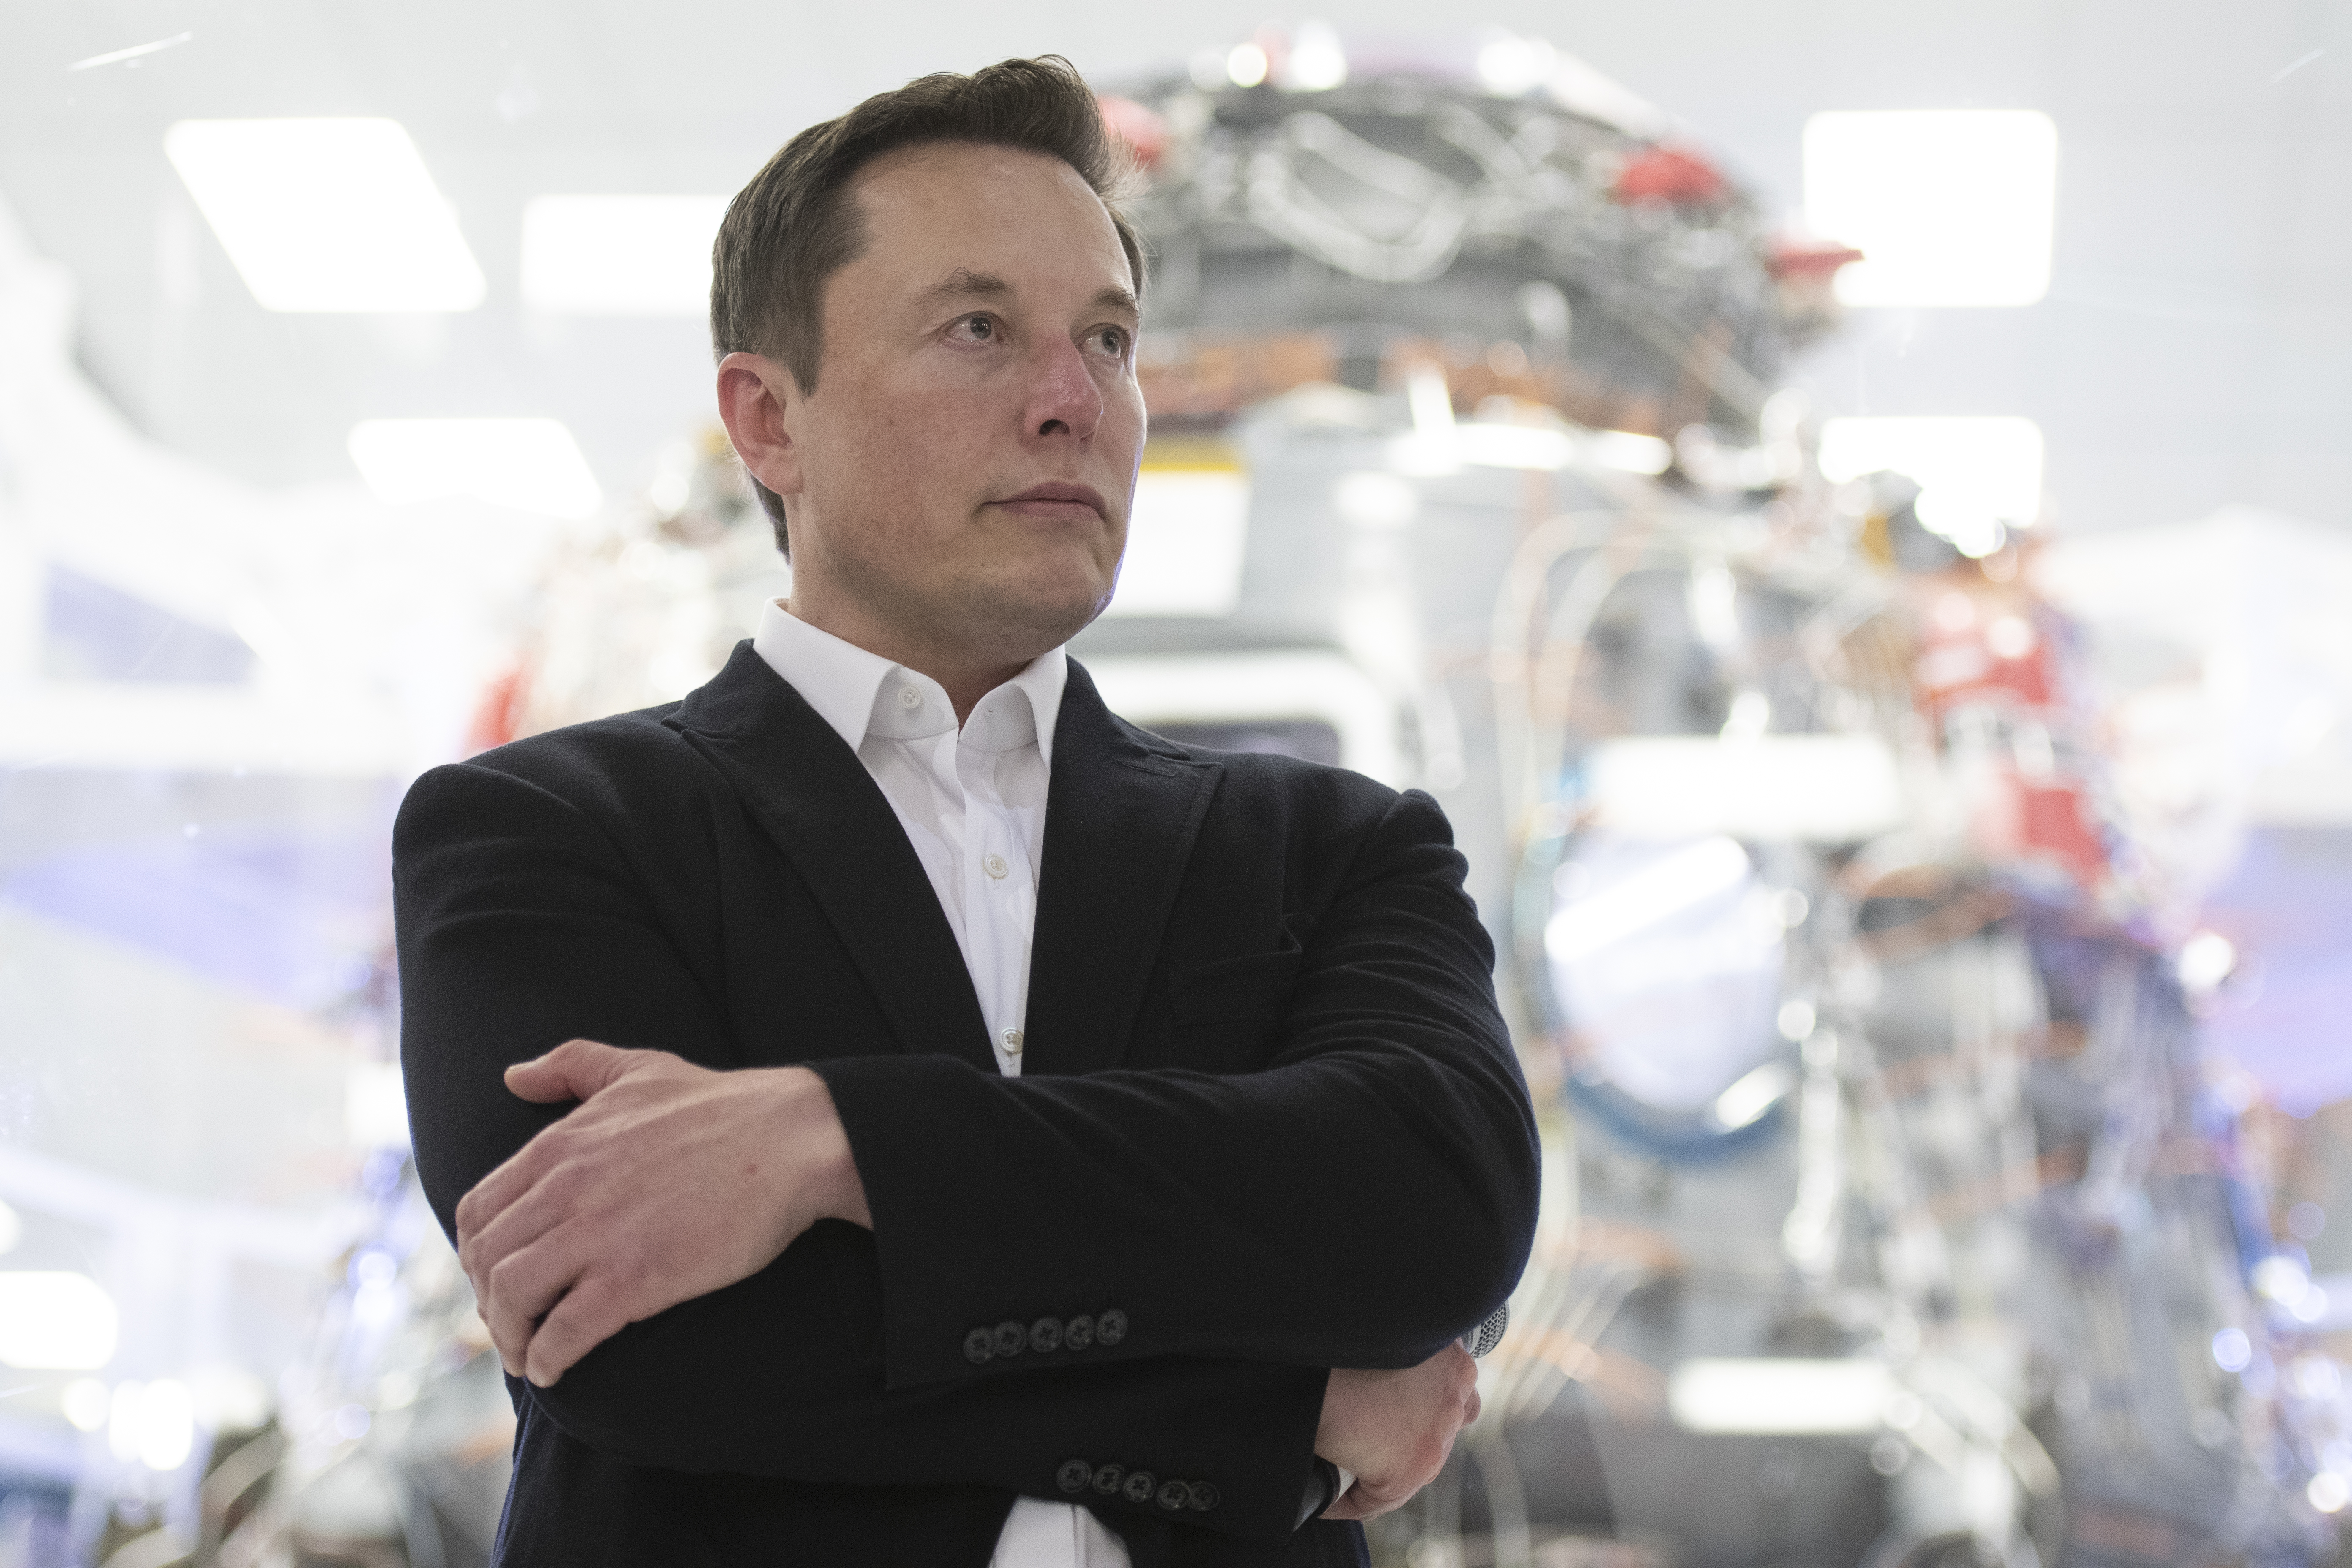 Elon Musk standing with arms crossed in front of a SpaceX capsule.